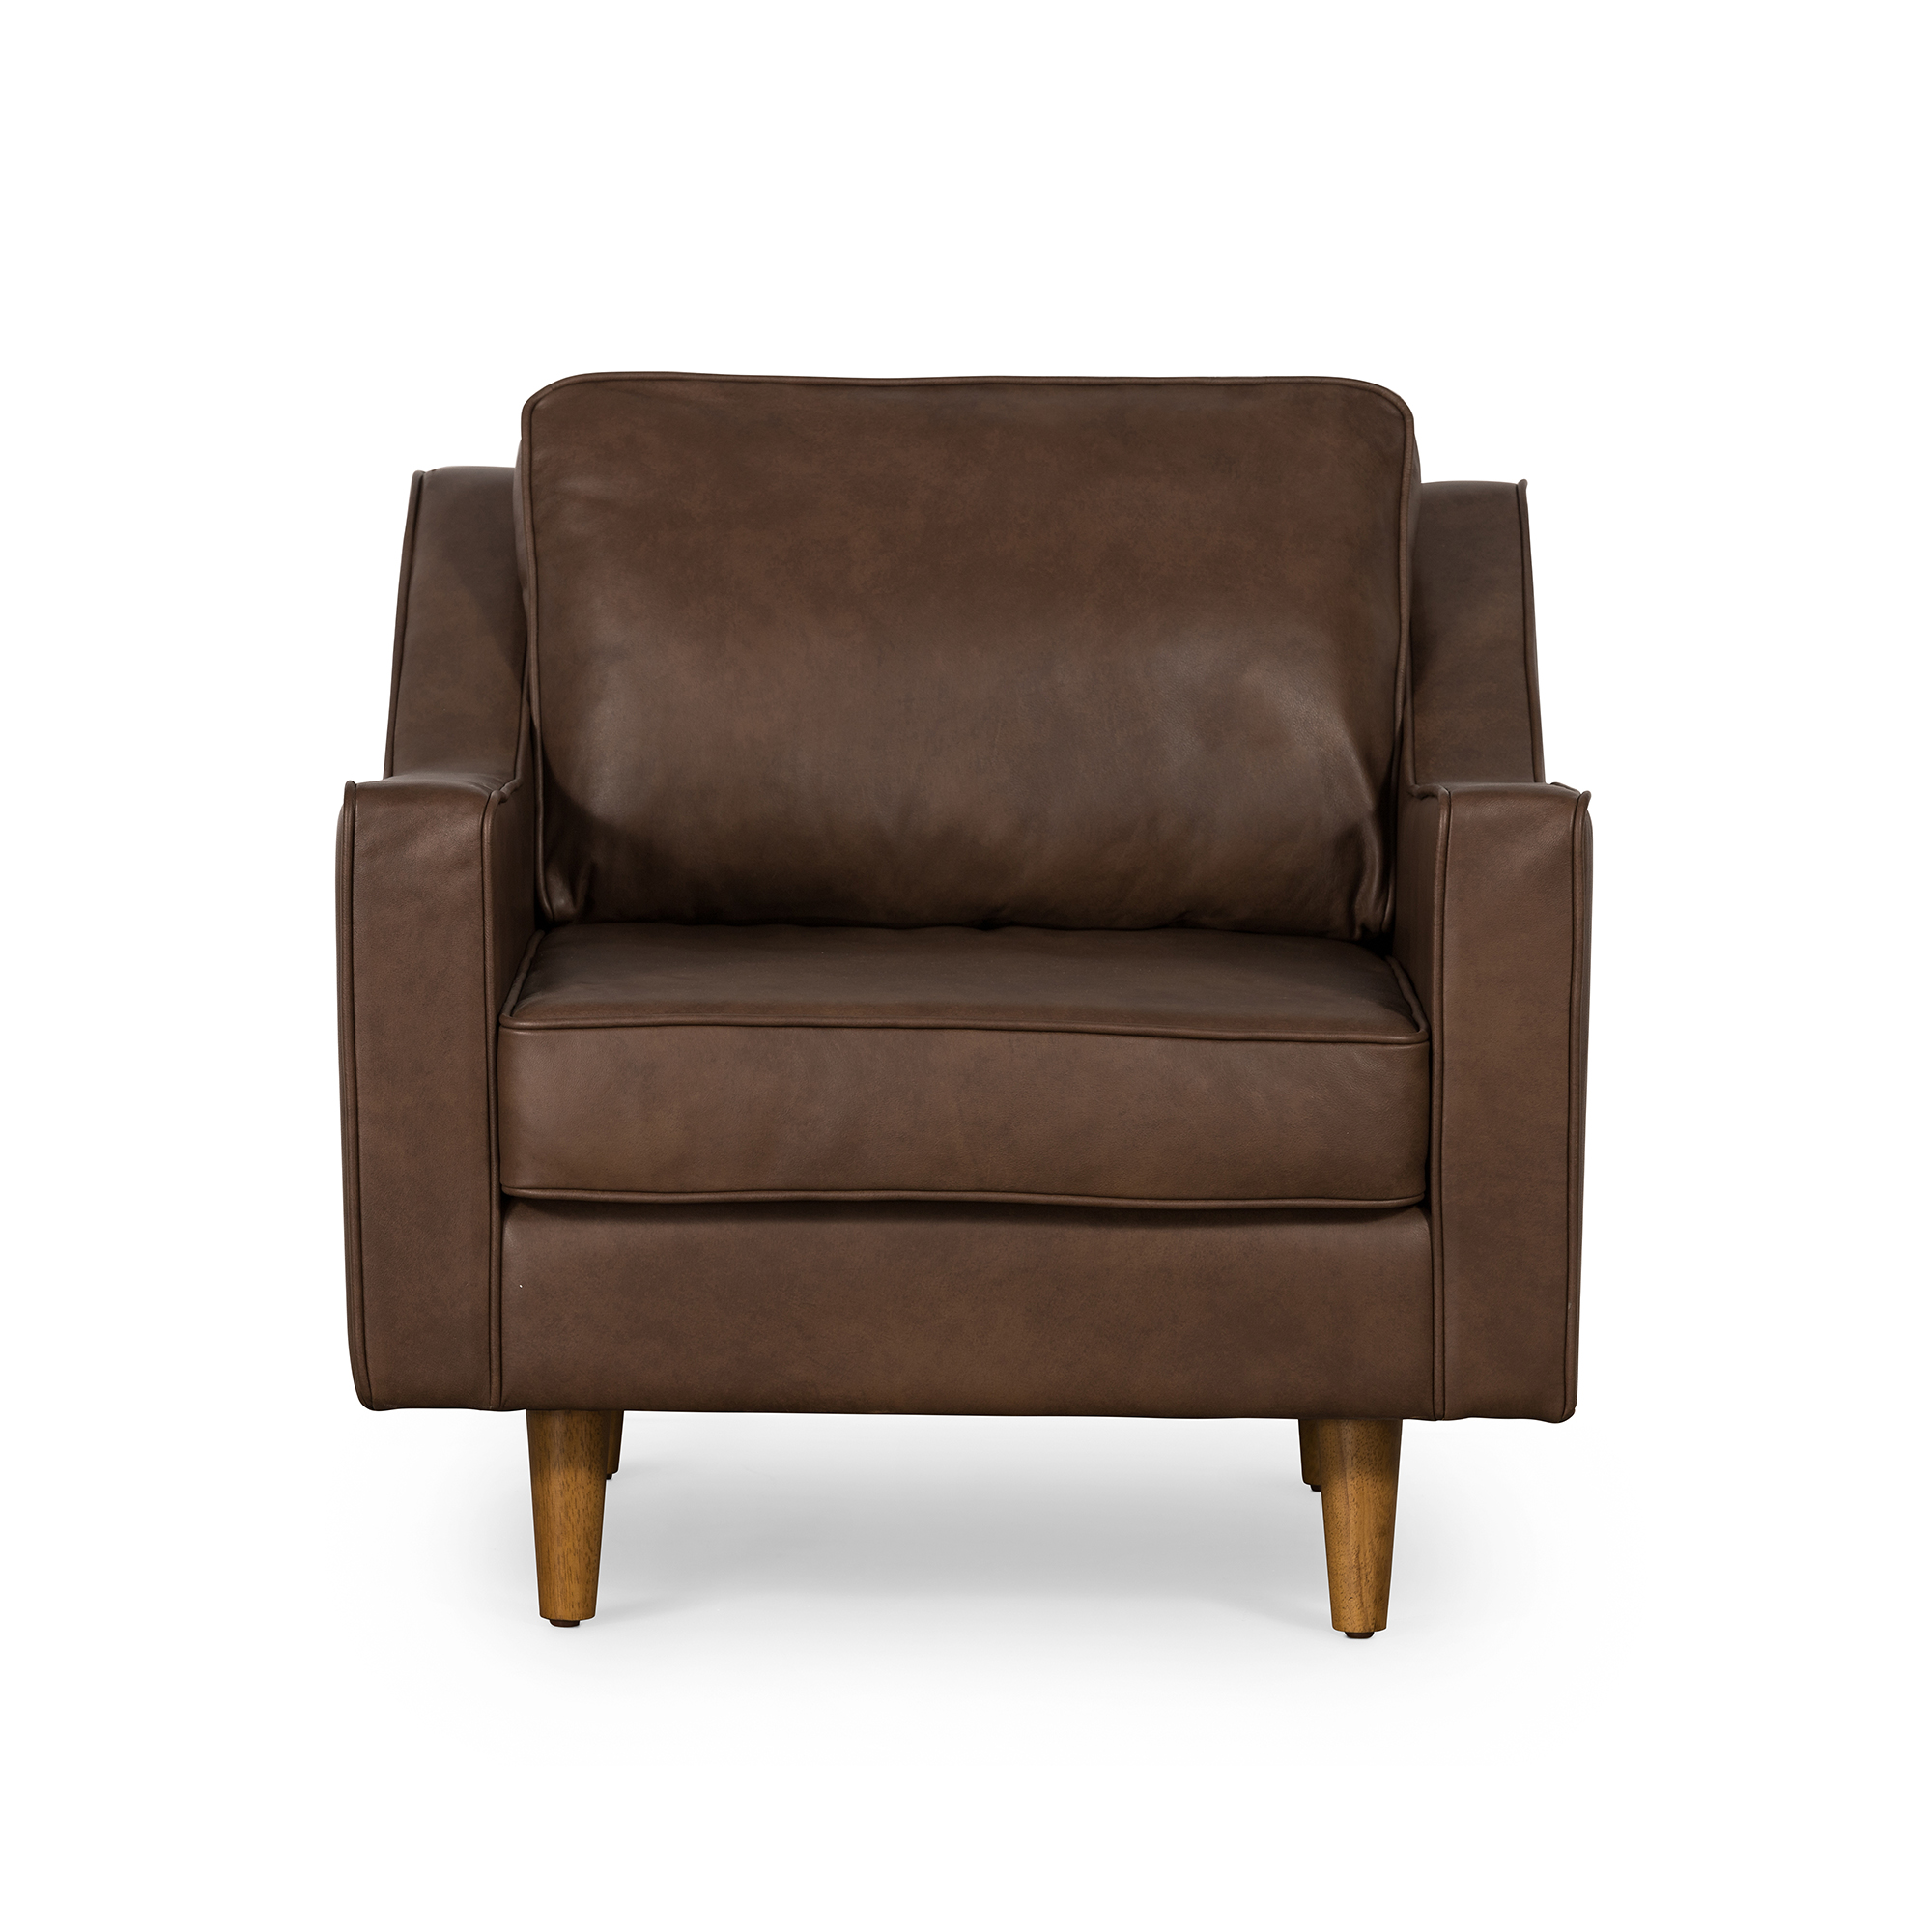 Taylor Armchair In Brown Leather by OneWorld Collection, a Chairs for sale on Style Sourcebook